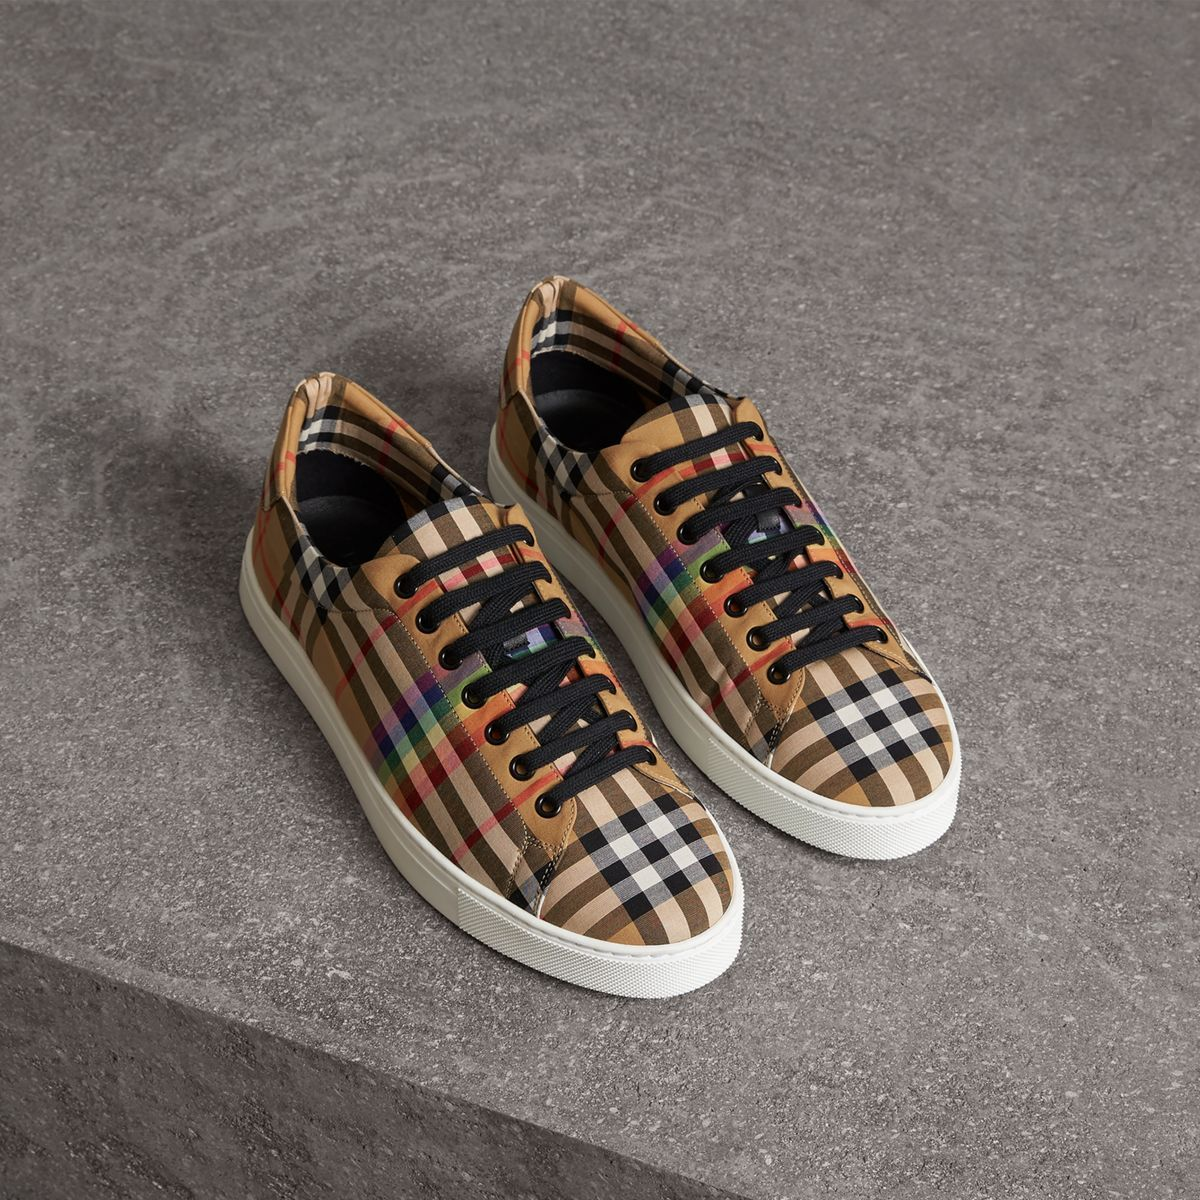 Burberry Rainbow Vintage Check Sneakers  da7715a59b6